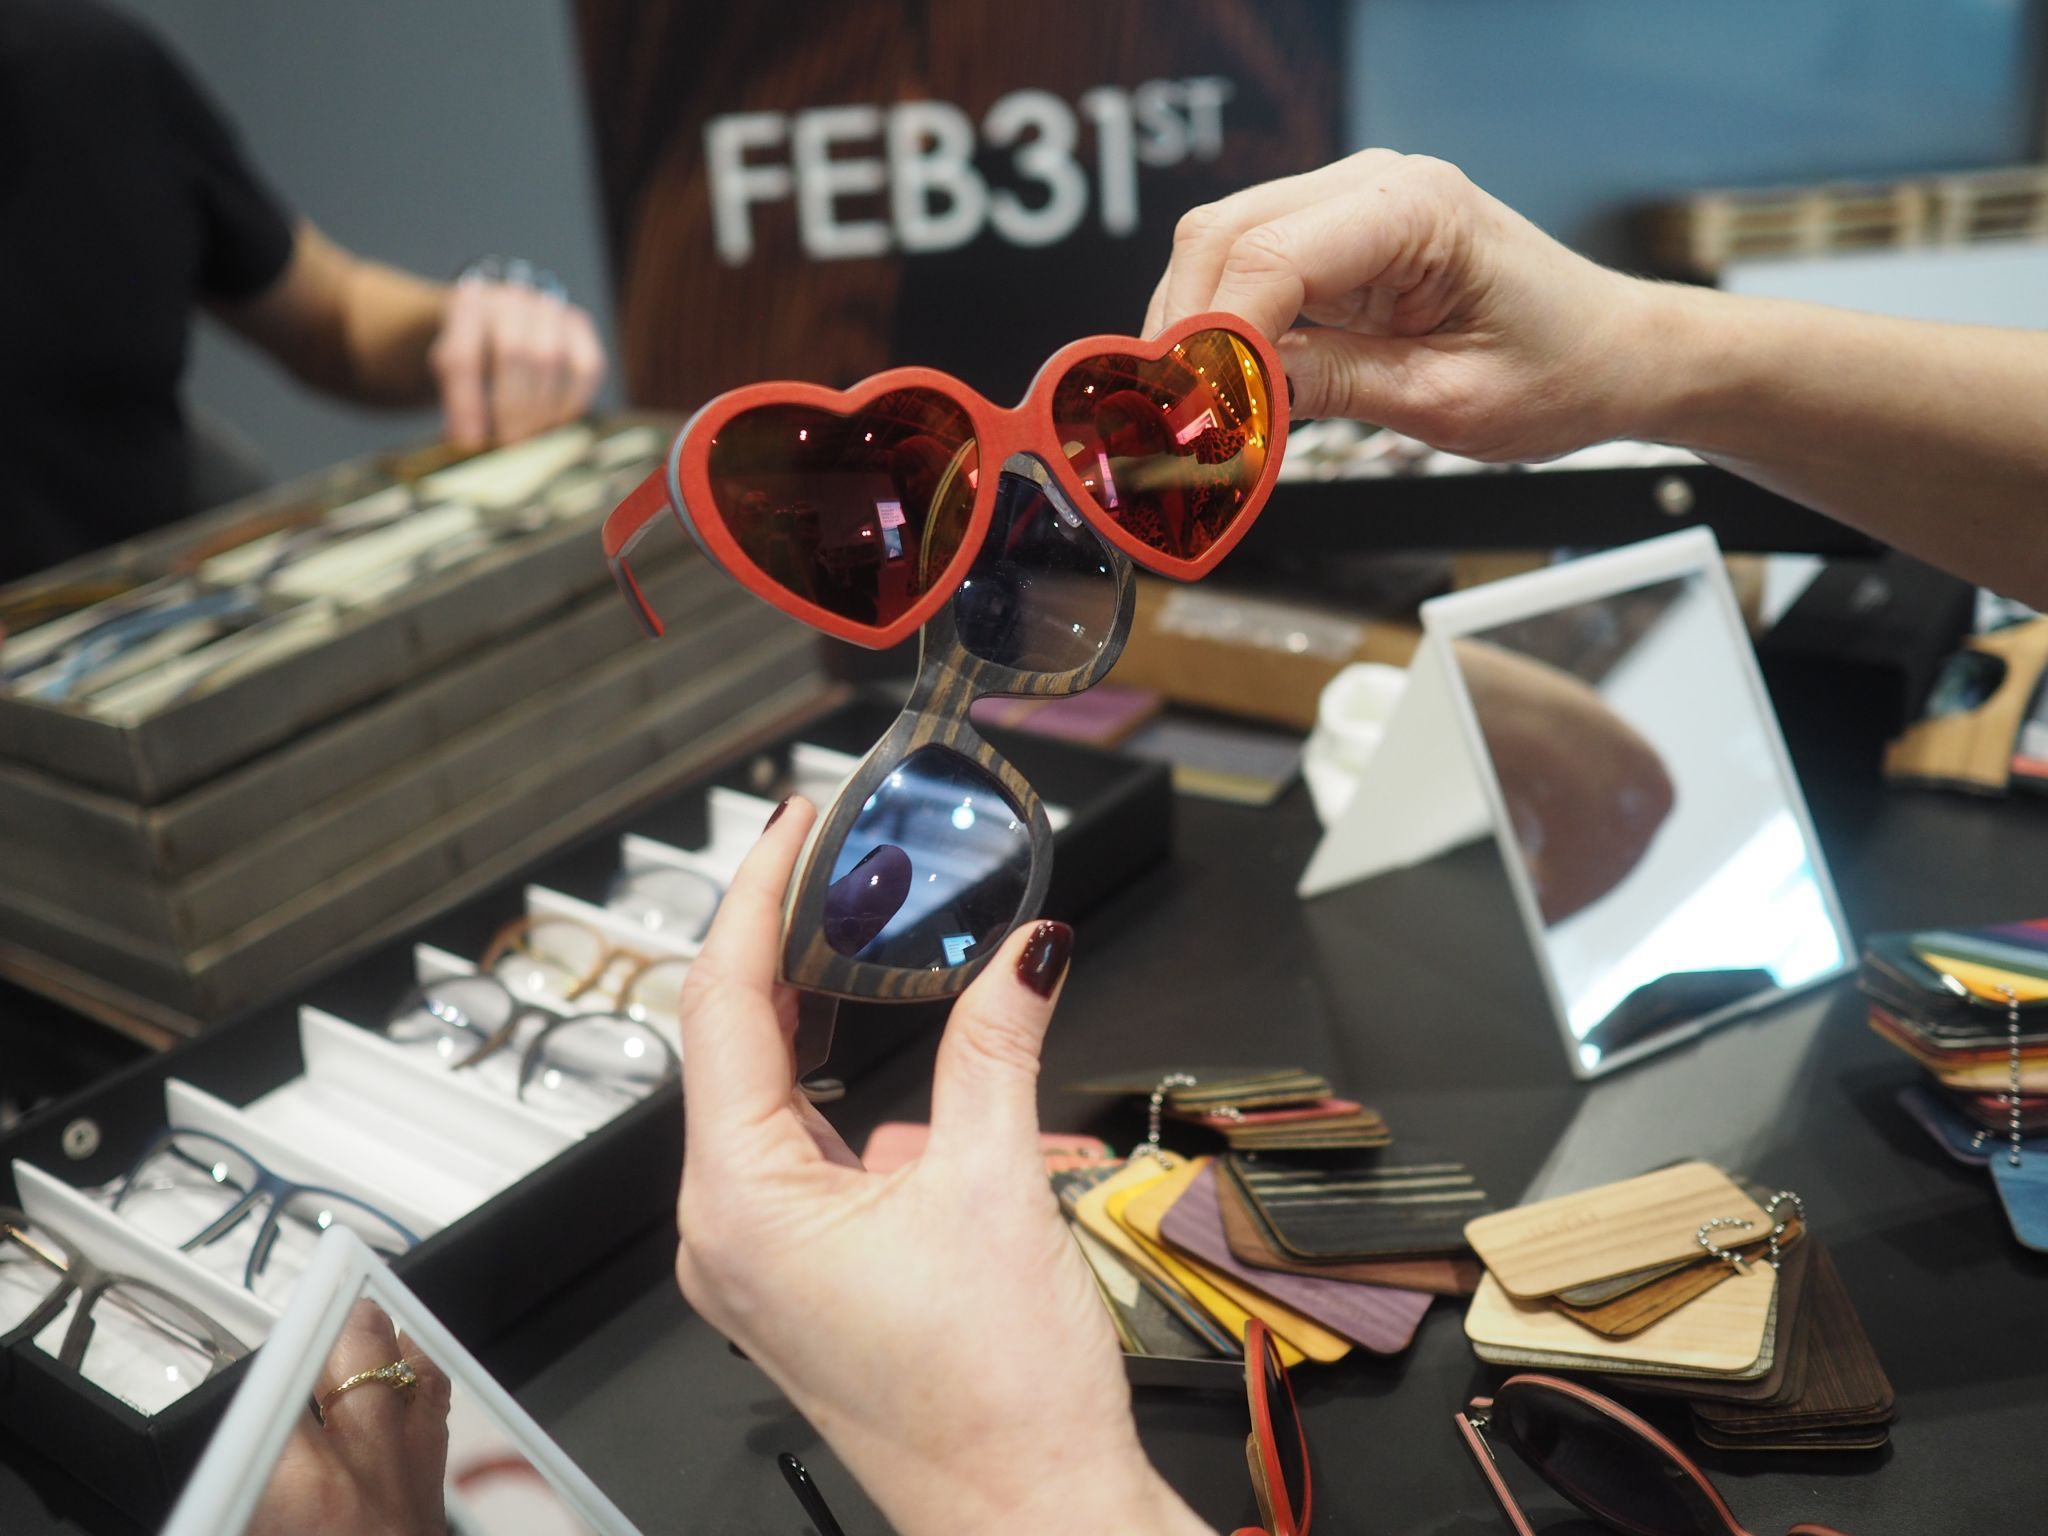 feb31st bespoke sustainable heart-shaped eyewear